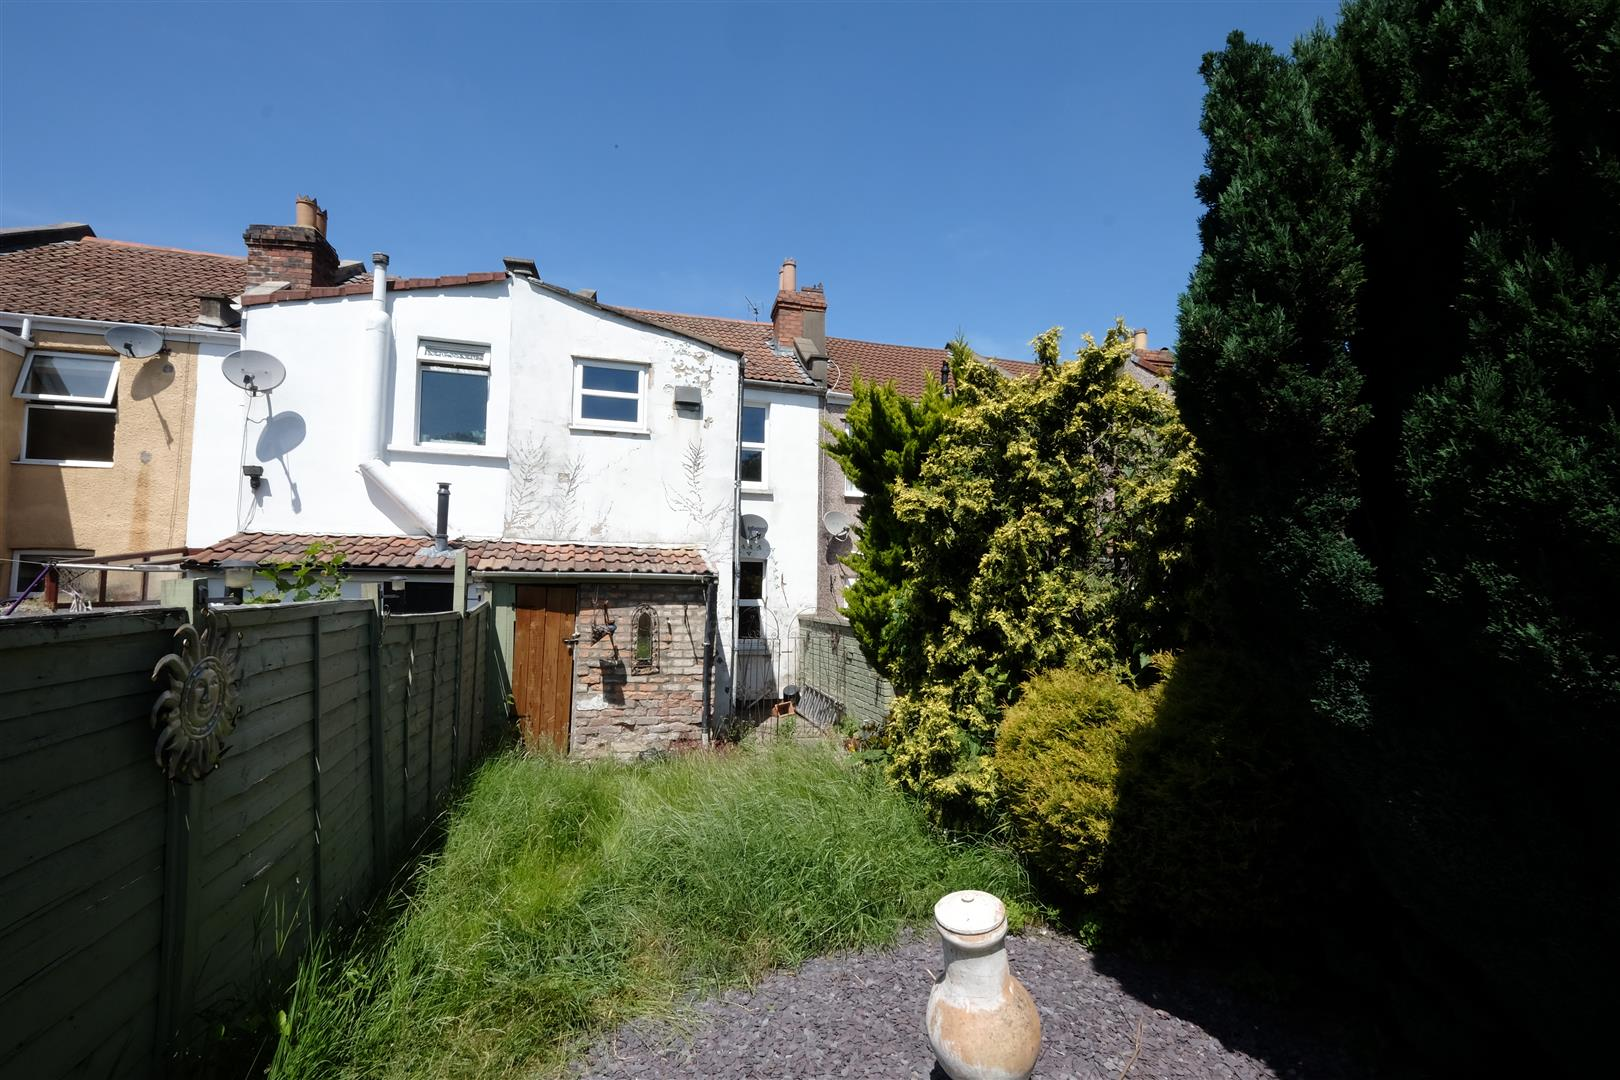 Images for HOUSE FOR MODERNISATION - FISHPONDS EAID:hollismoapi BID:11